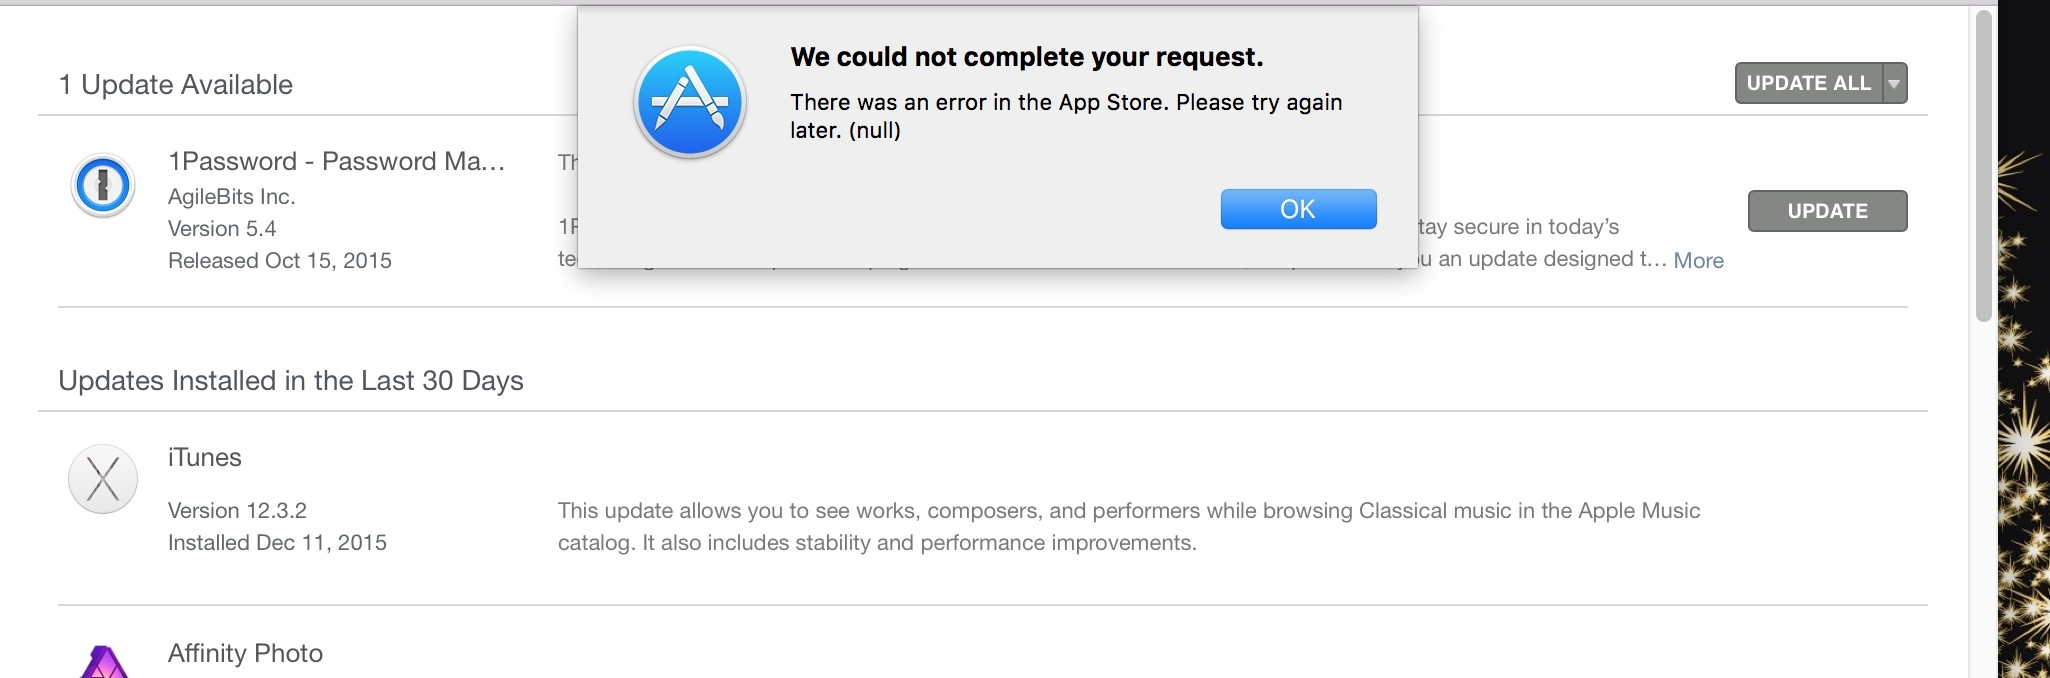 Mac app store will not update my app, I also have an earlier